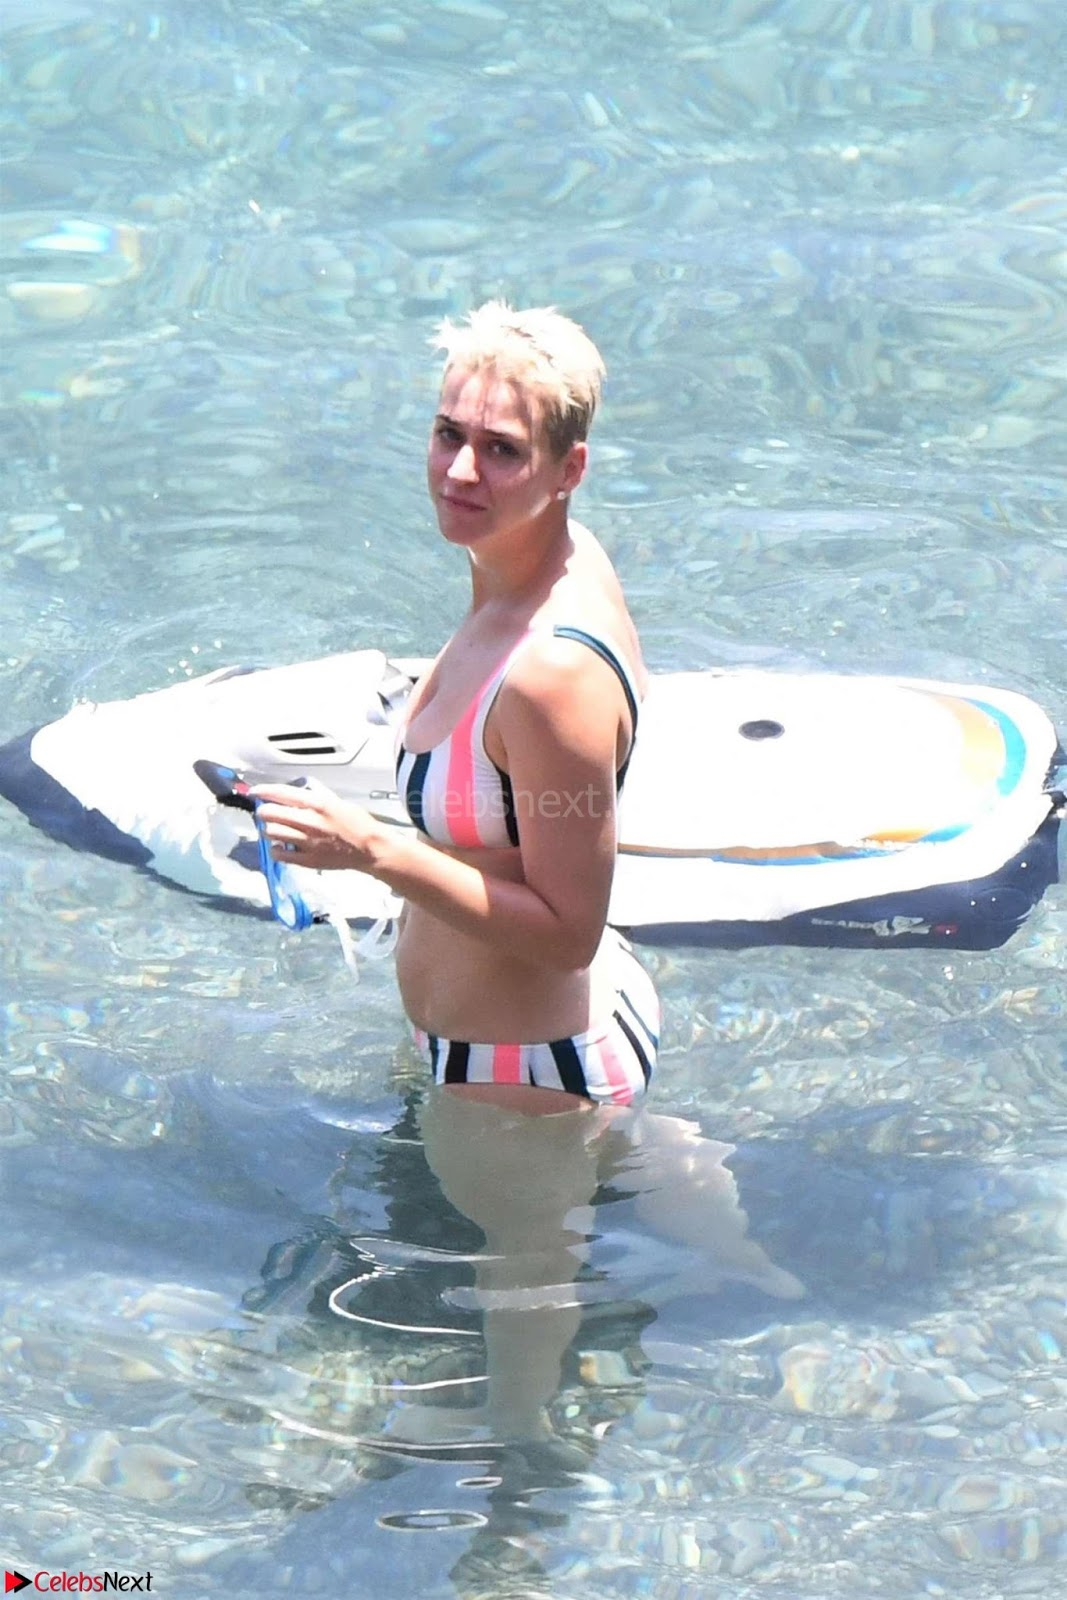 Katy  Perry super whtie girl in tiny Bikini July 2017 Huge Cleavages Boobs